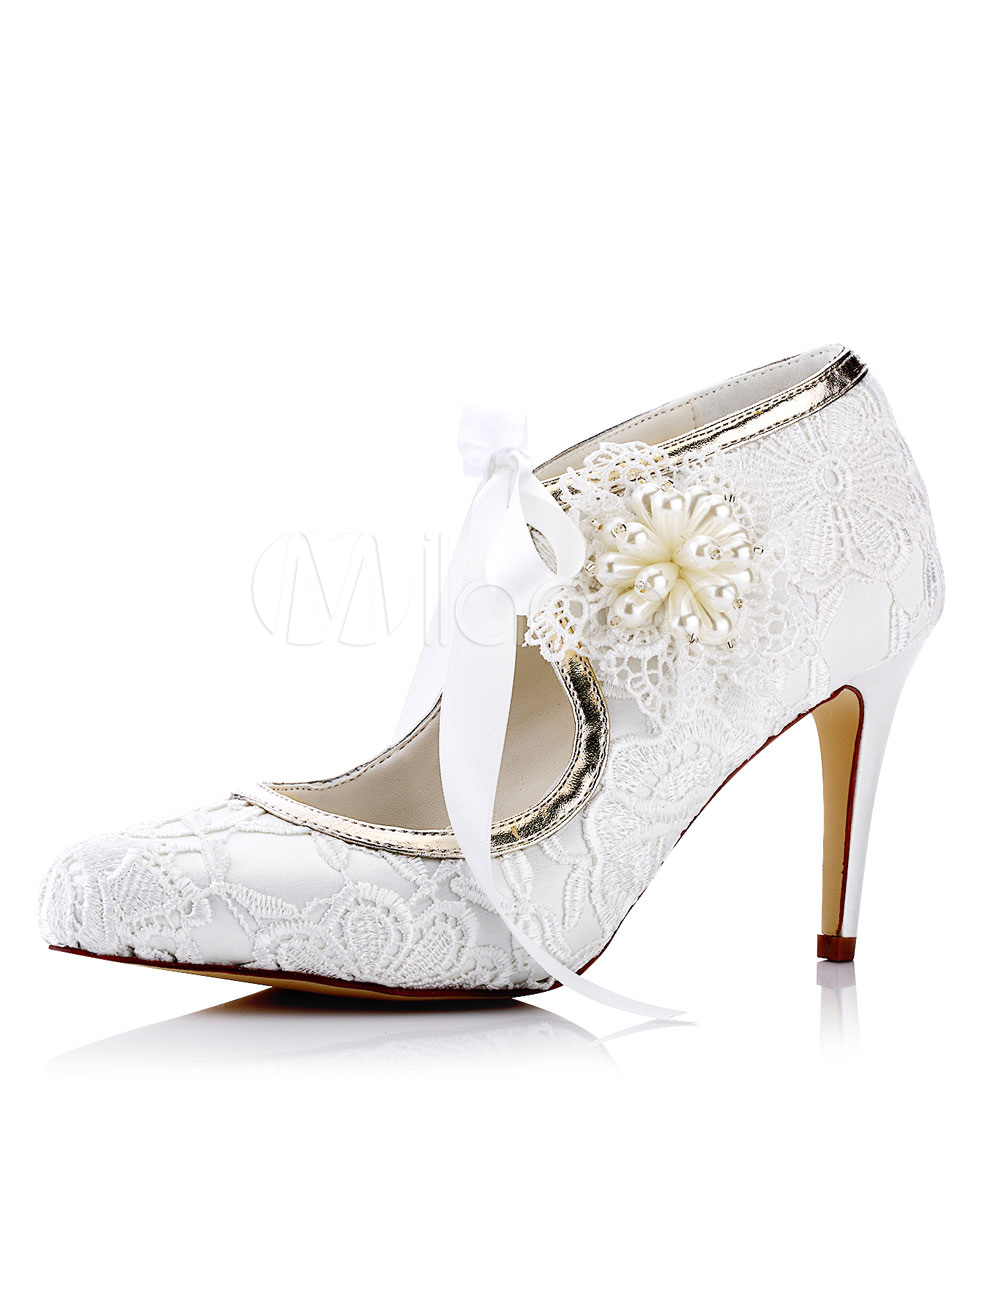 Buy Lace Wedding Shoes White Pointed Toe Rhinestones Beaded High Heel Bridal Shoes for $55.09 in Milanoo store